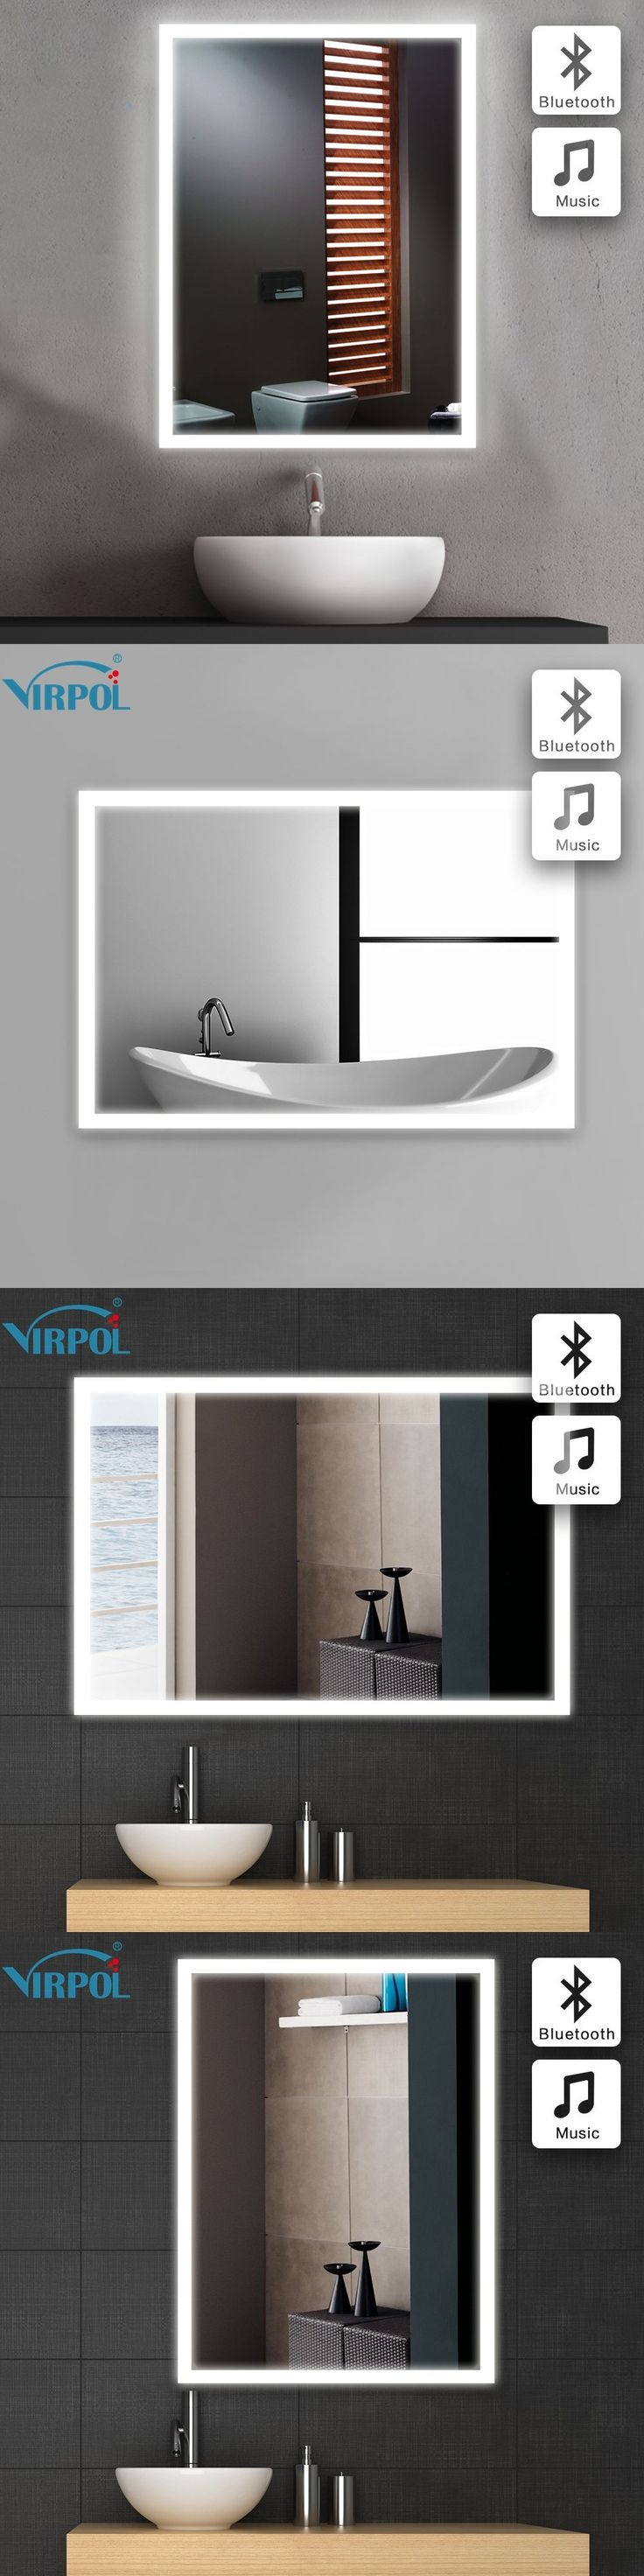 best 25+ bluetooth bathroom mirror ideas on pinterest | bluetooth